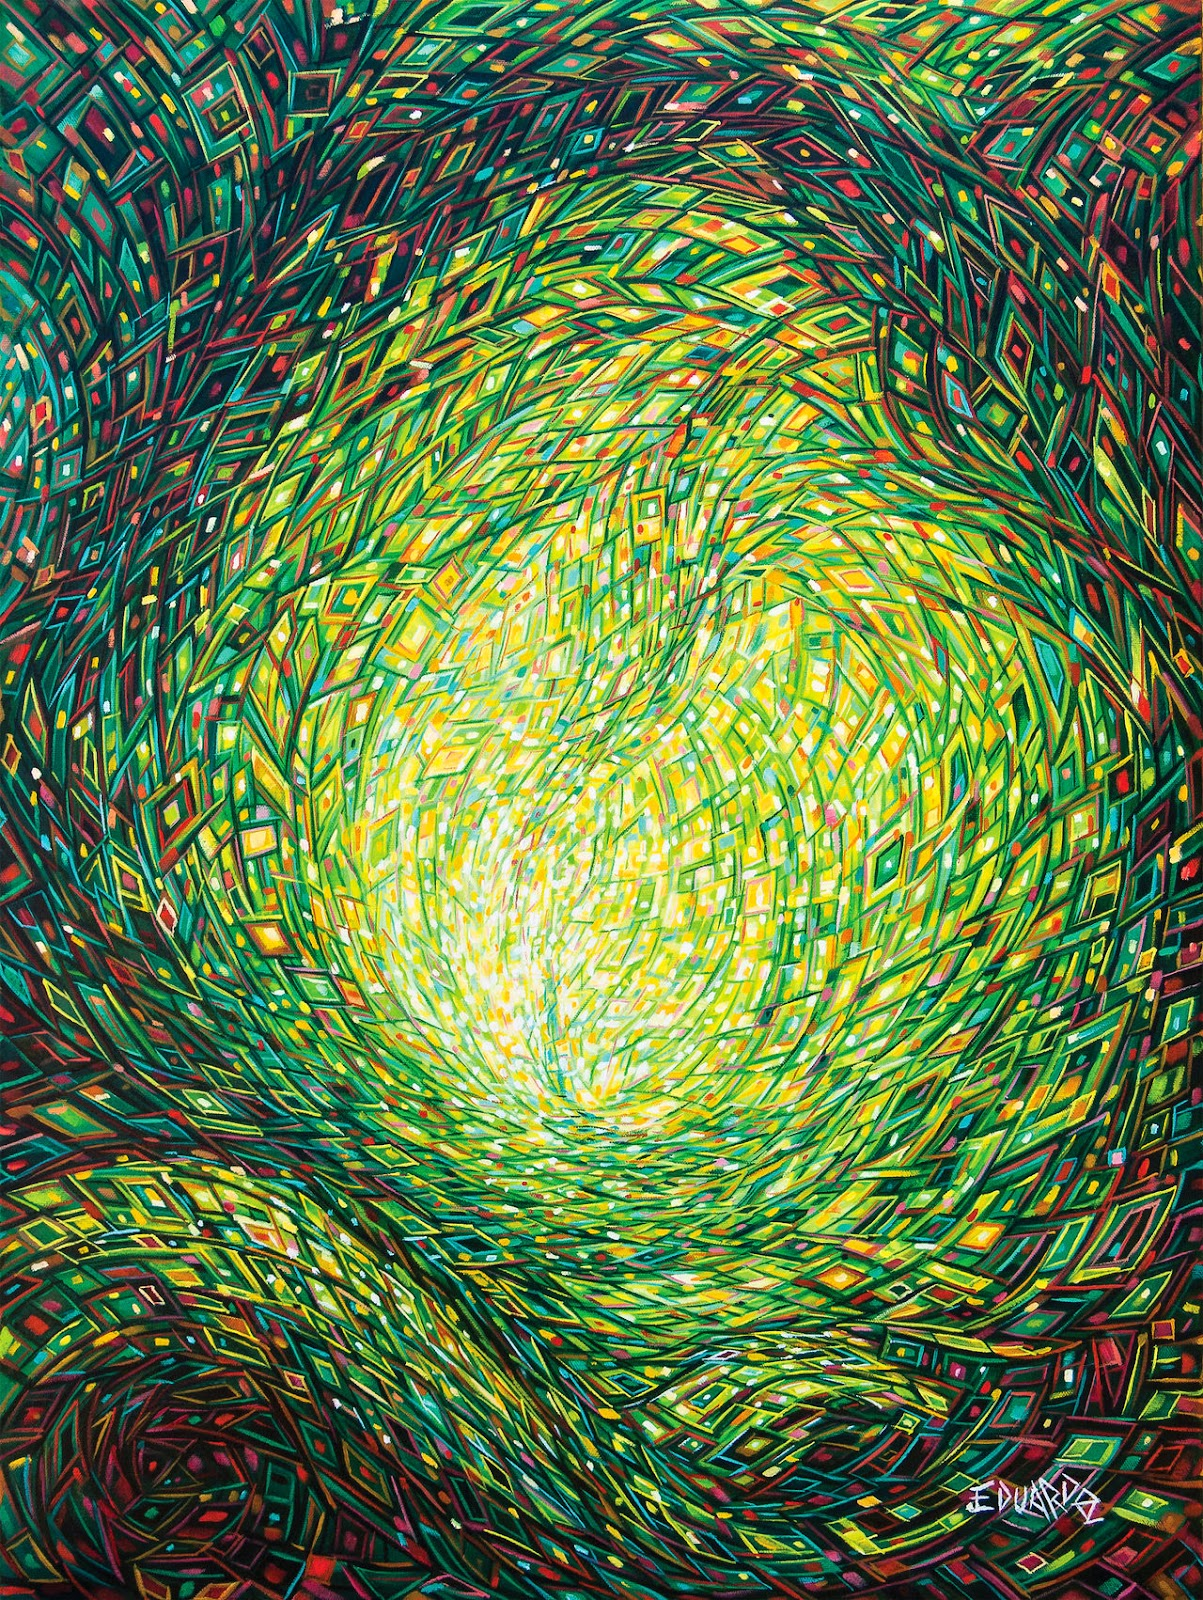 07-Into-the-Unknown-Eduardo-R-Calzado-Paintings-in-Swirls-of-Colour-www-designstack-co